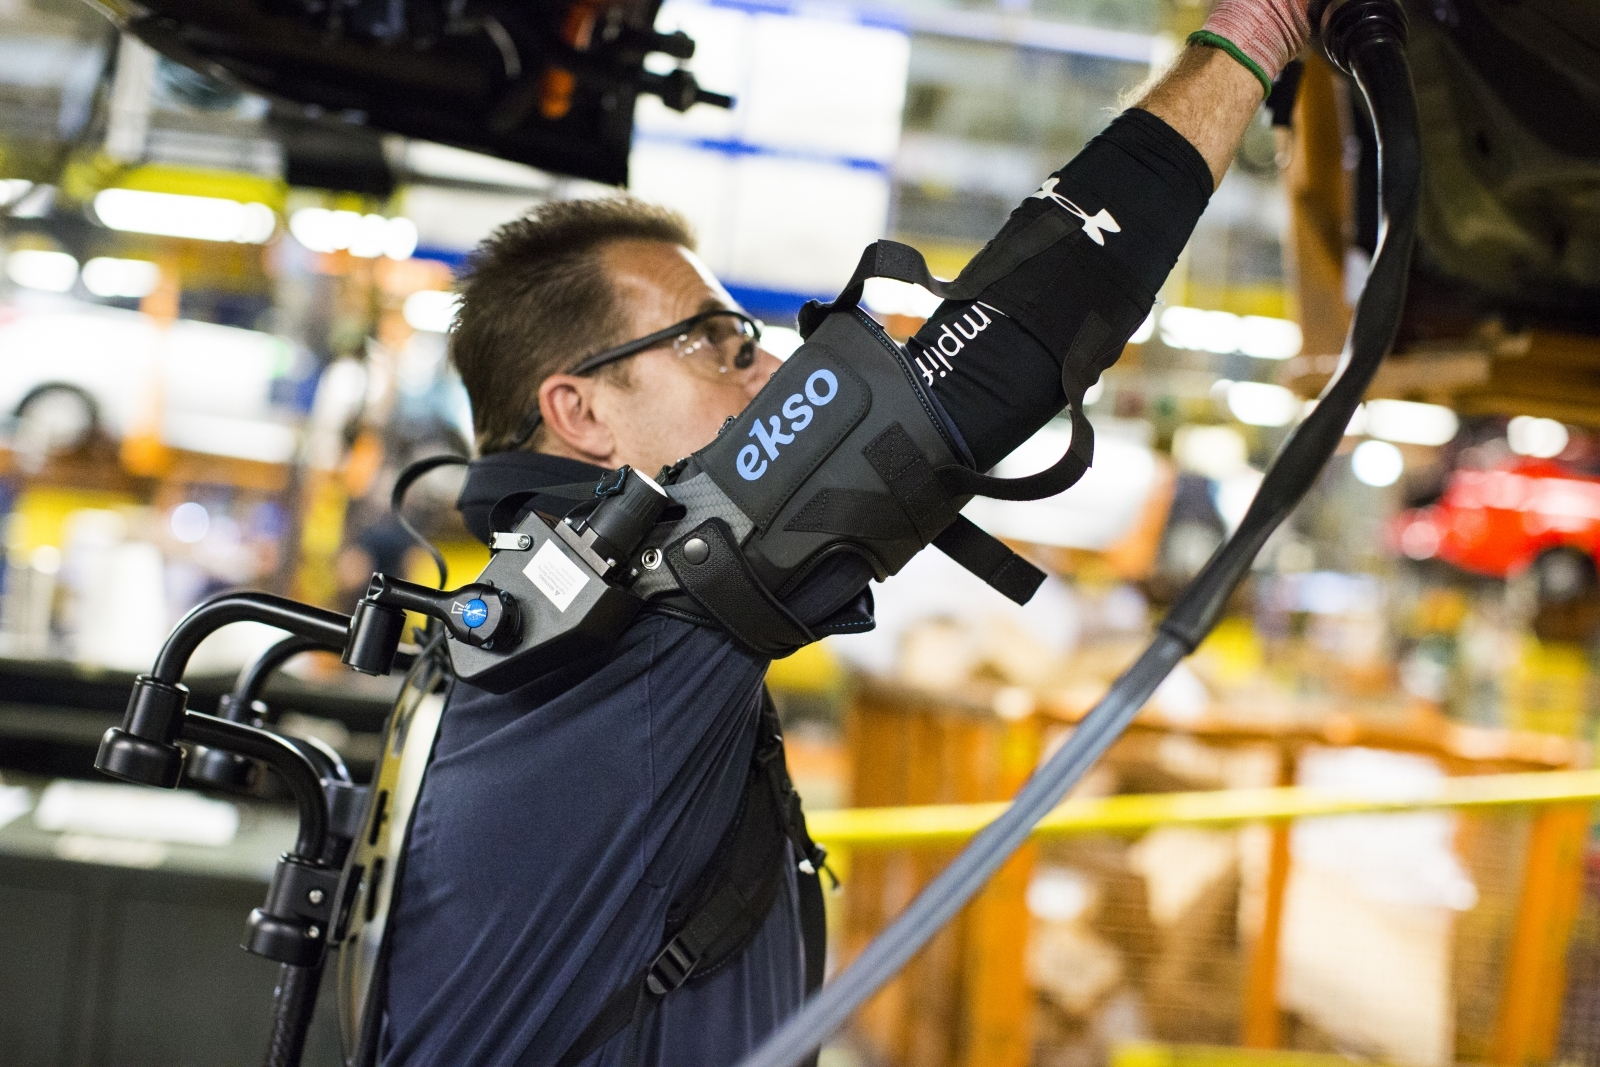 Ford testing exoskeleton created to  ease physical tasks for workers